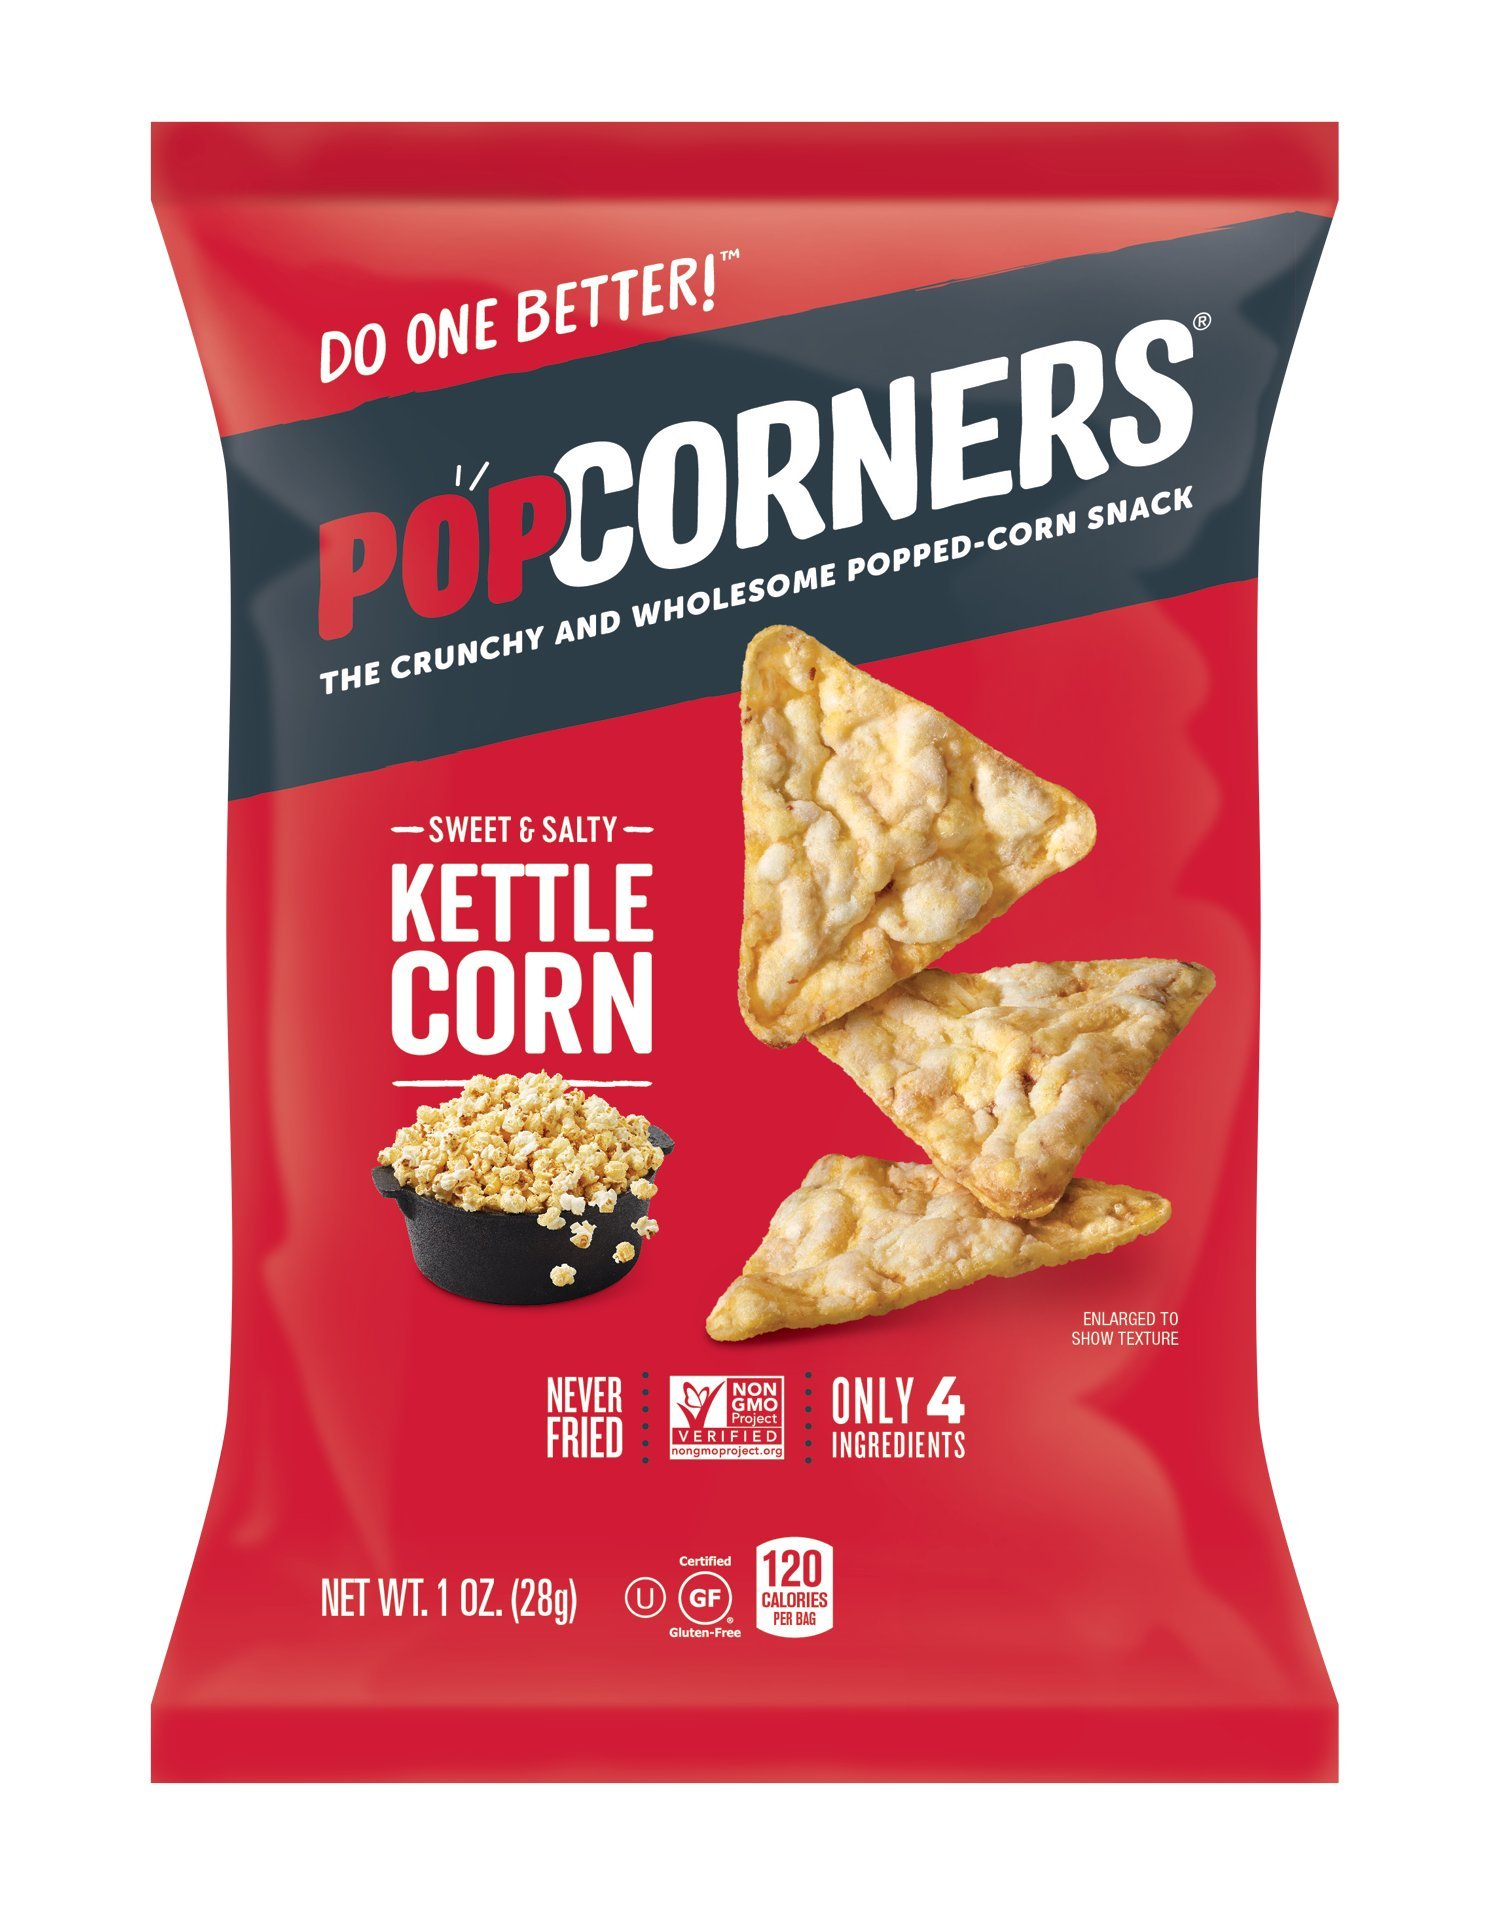 PopCorners Kettle Corn Snack Pack | Gluten Free, Vegan Snack | (40 Pack, 1 oz Snack Bags) by Popcorners (Image #1)